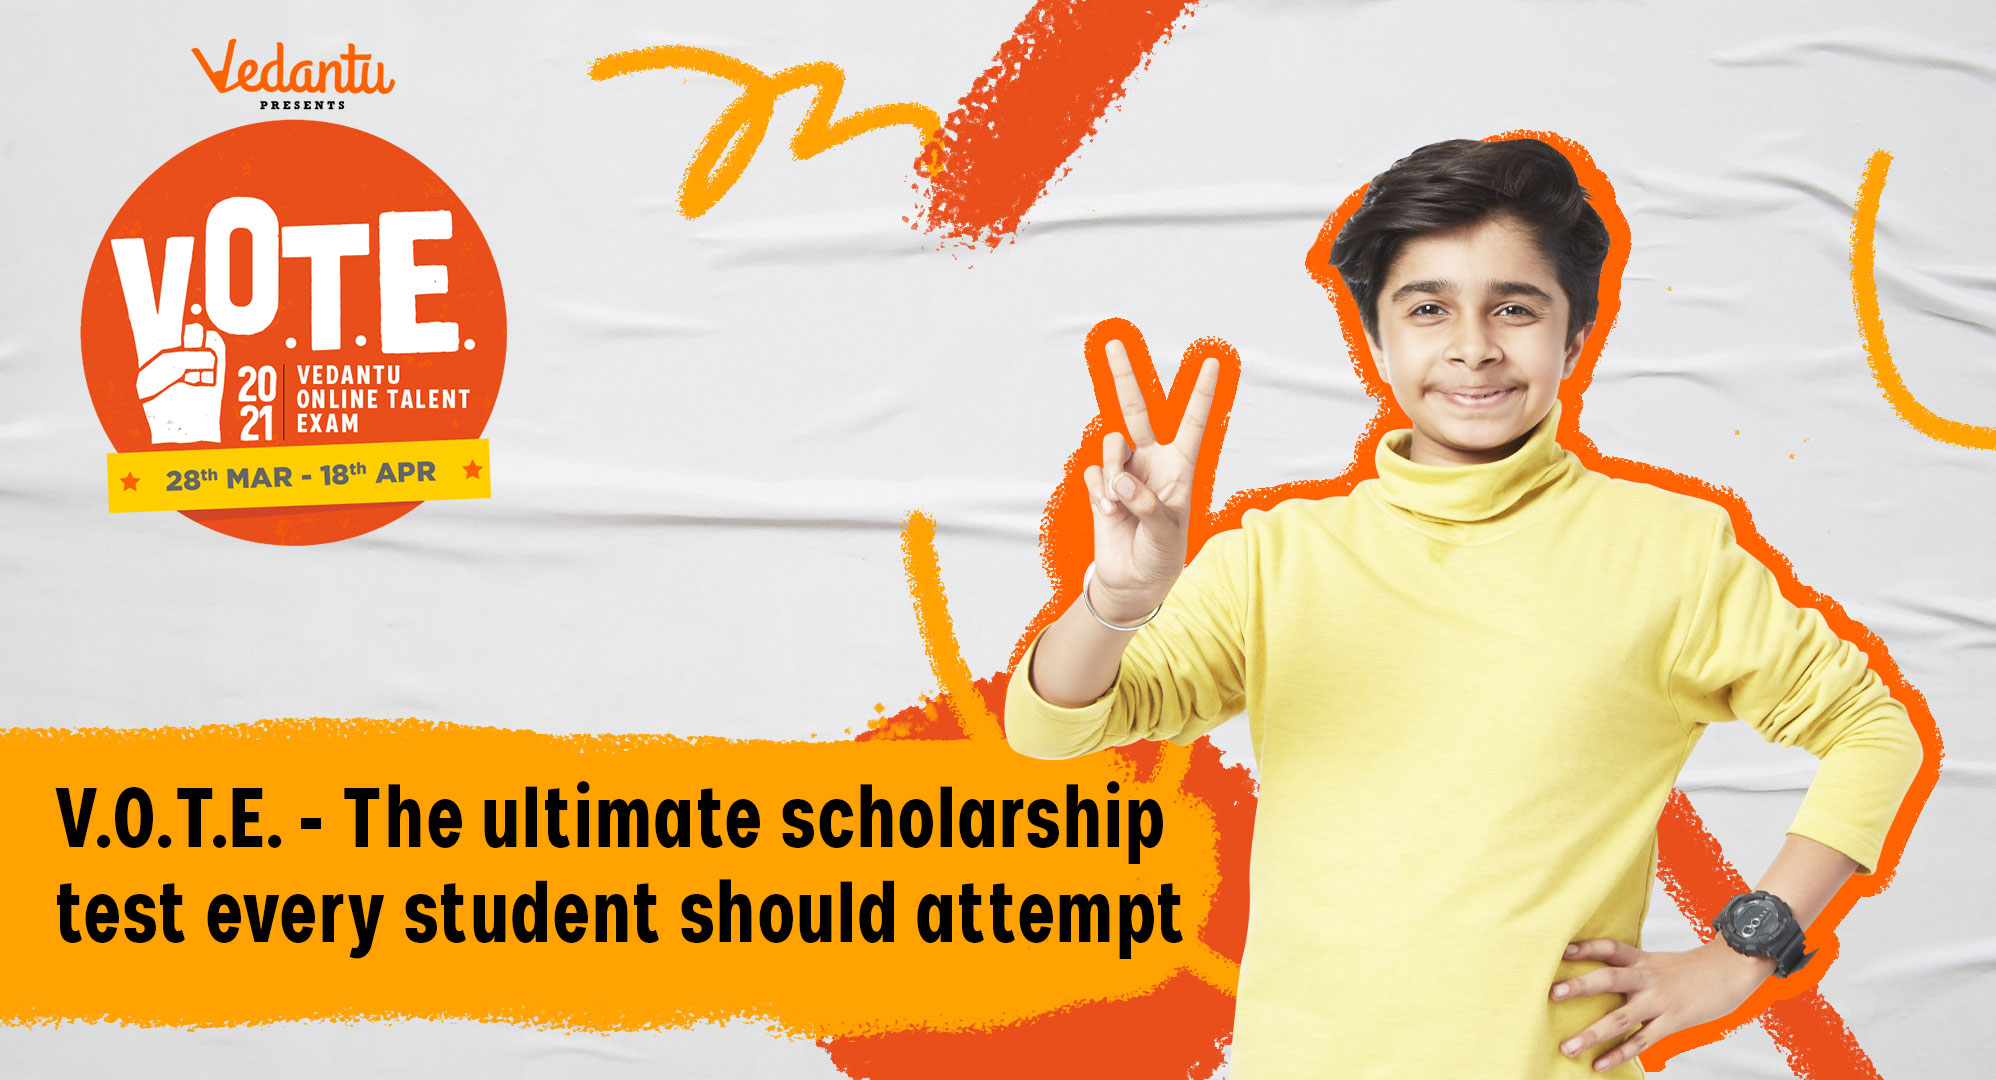 V.O.T.E. - The Ultimate Scholarship Test Every Student Should Attempt